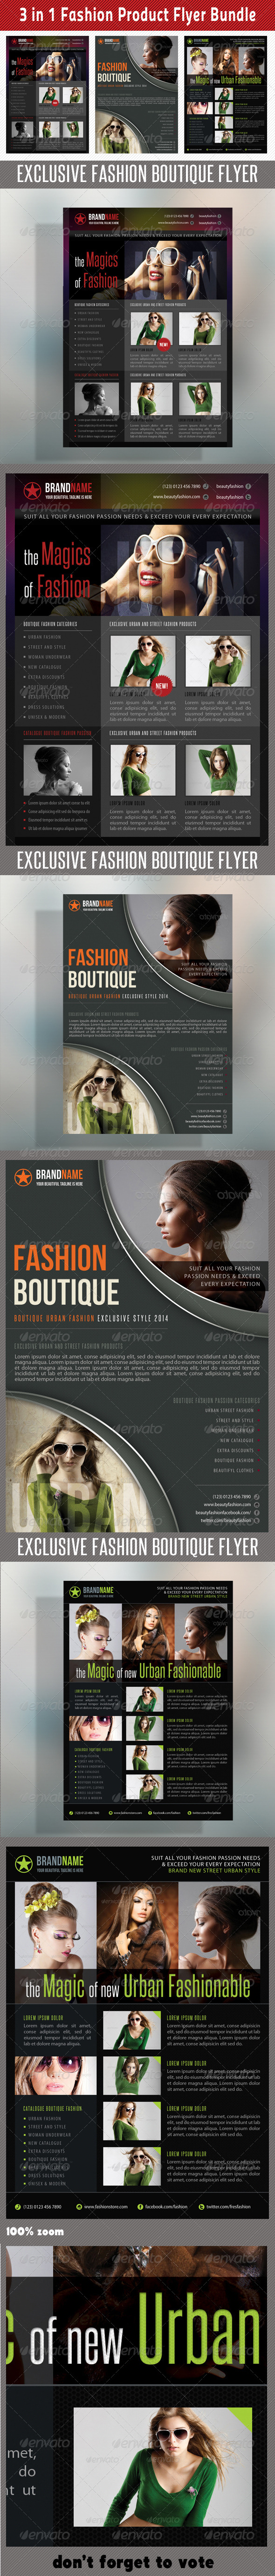 GraphicRiver 3 in 1 Fashion Product Flyer Bundle 11 6695419